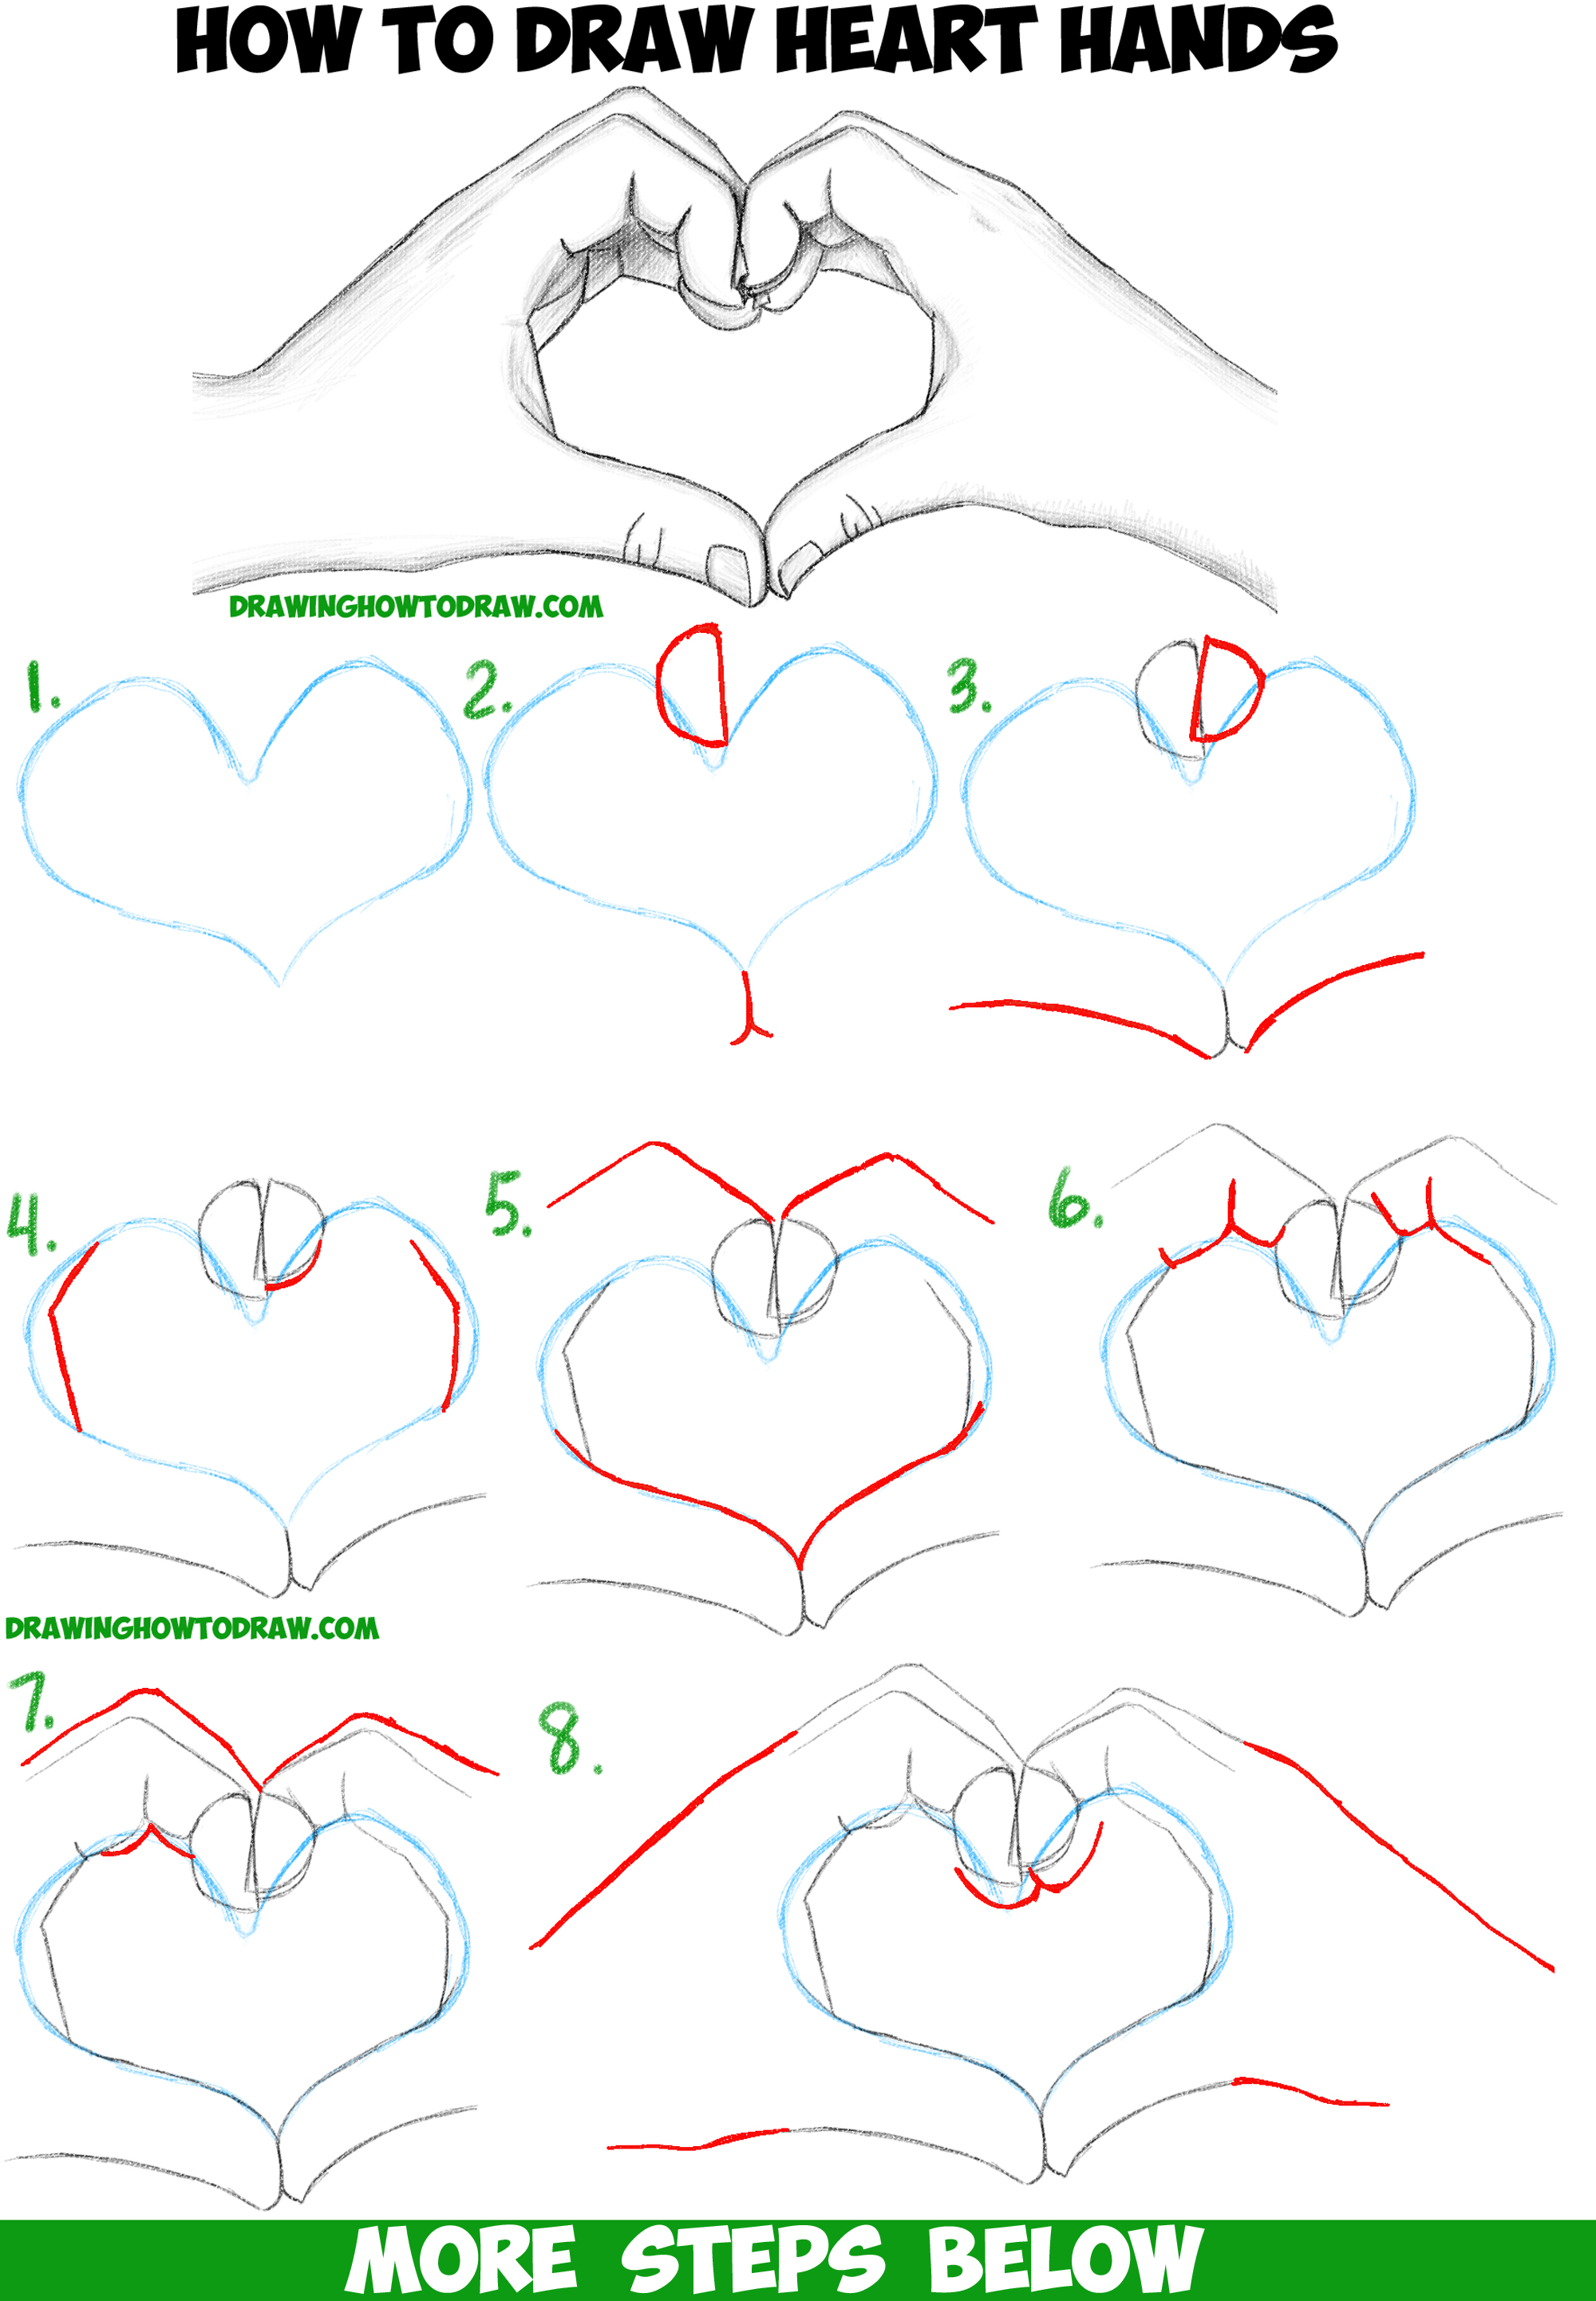 How to Draw Heart Hands in Easy to Follow Step by Step Drawing Tutorial for Beginners and Intermediates